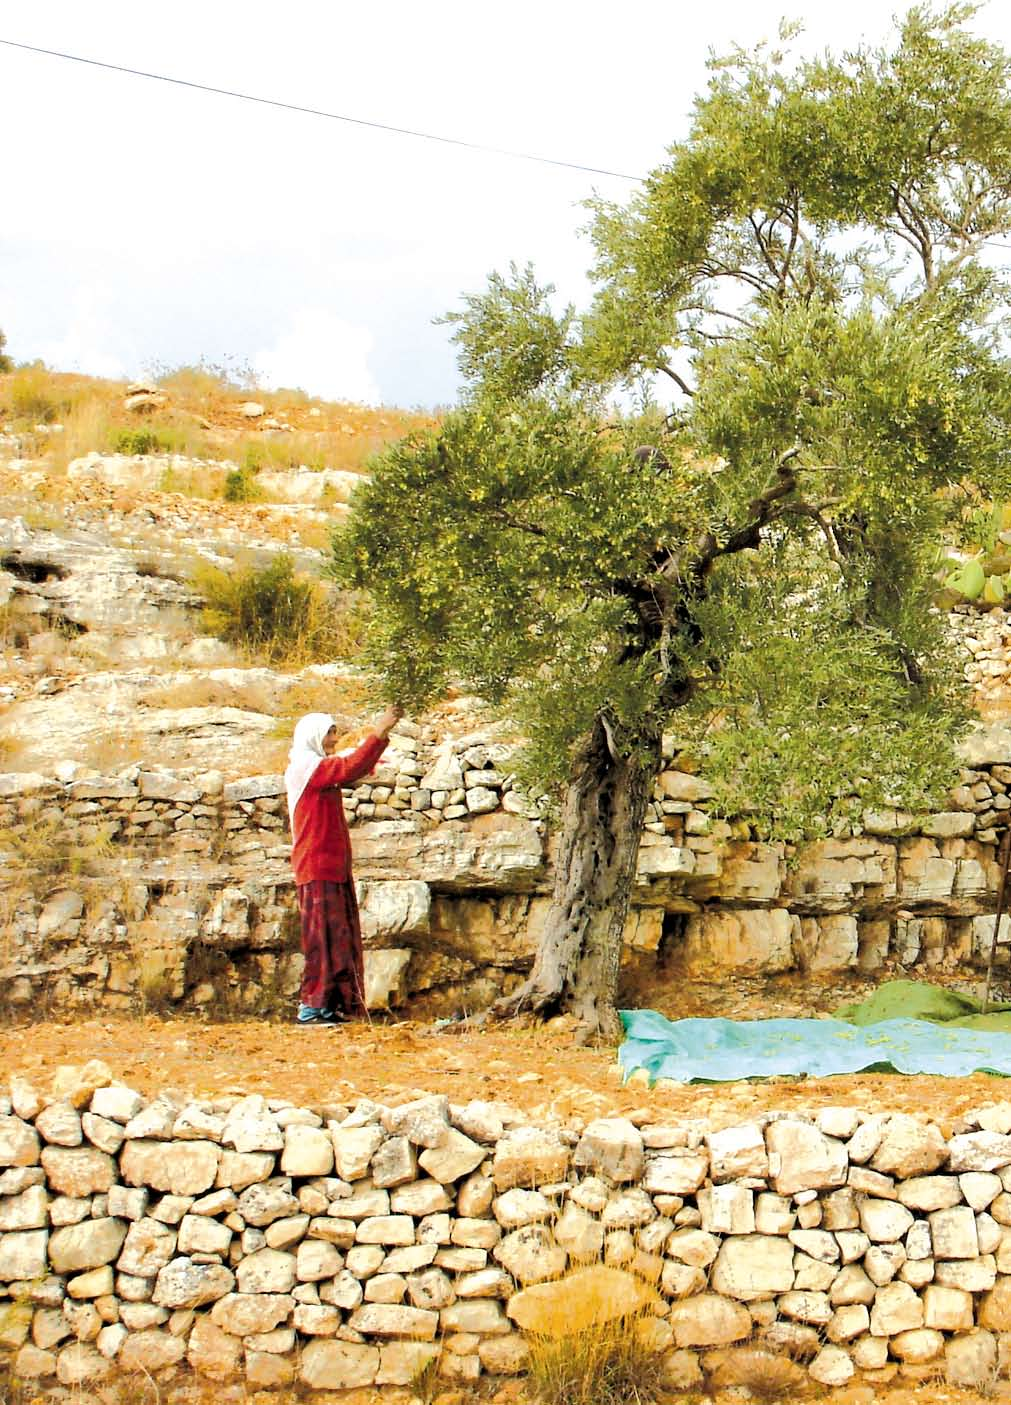 If the Olive trees had known the hands that planted